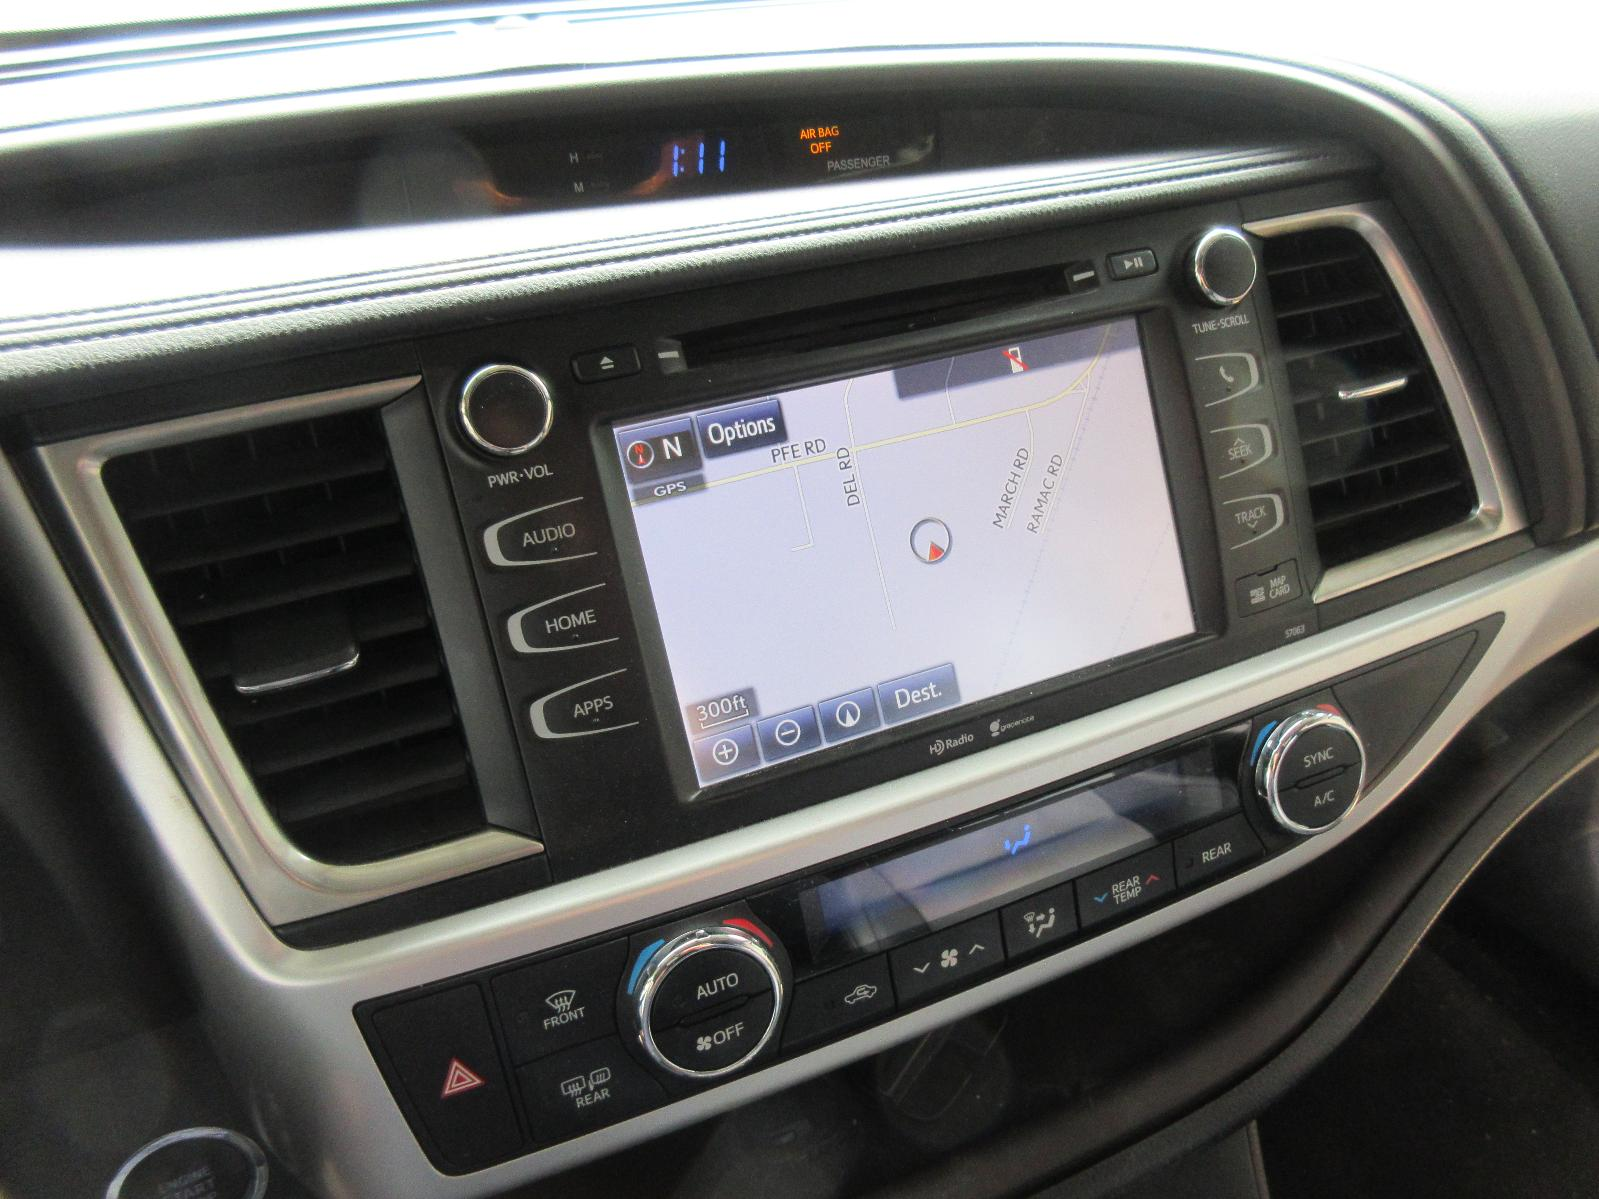 Used Audio Visual System  Radio  For Sale For A 2015 Toyota Highlander